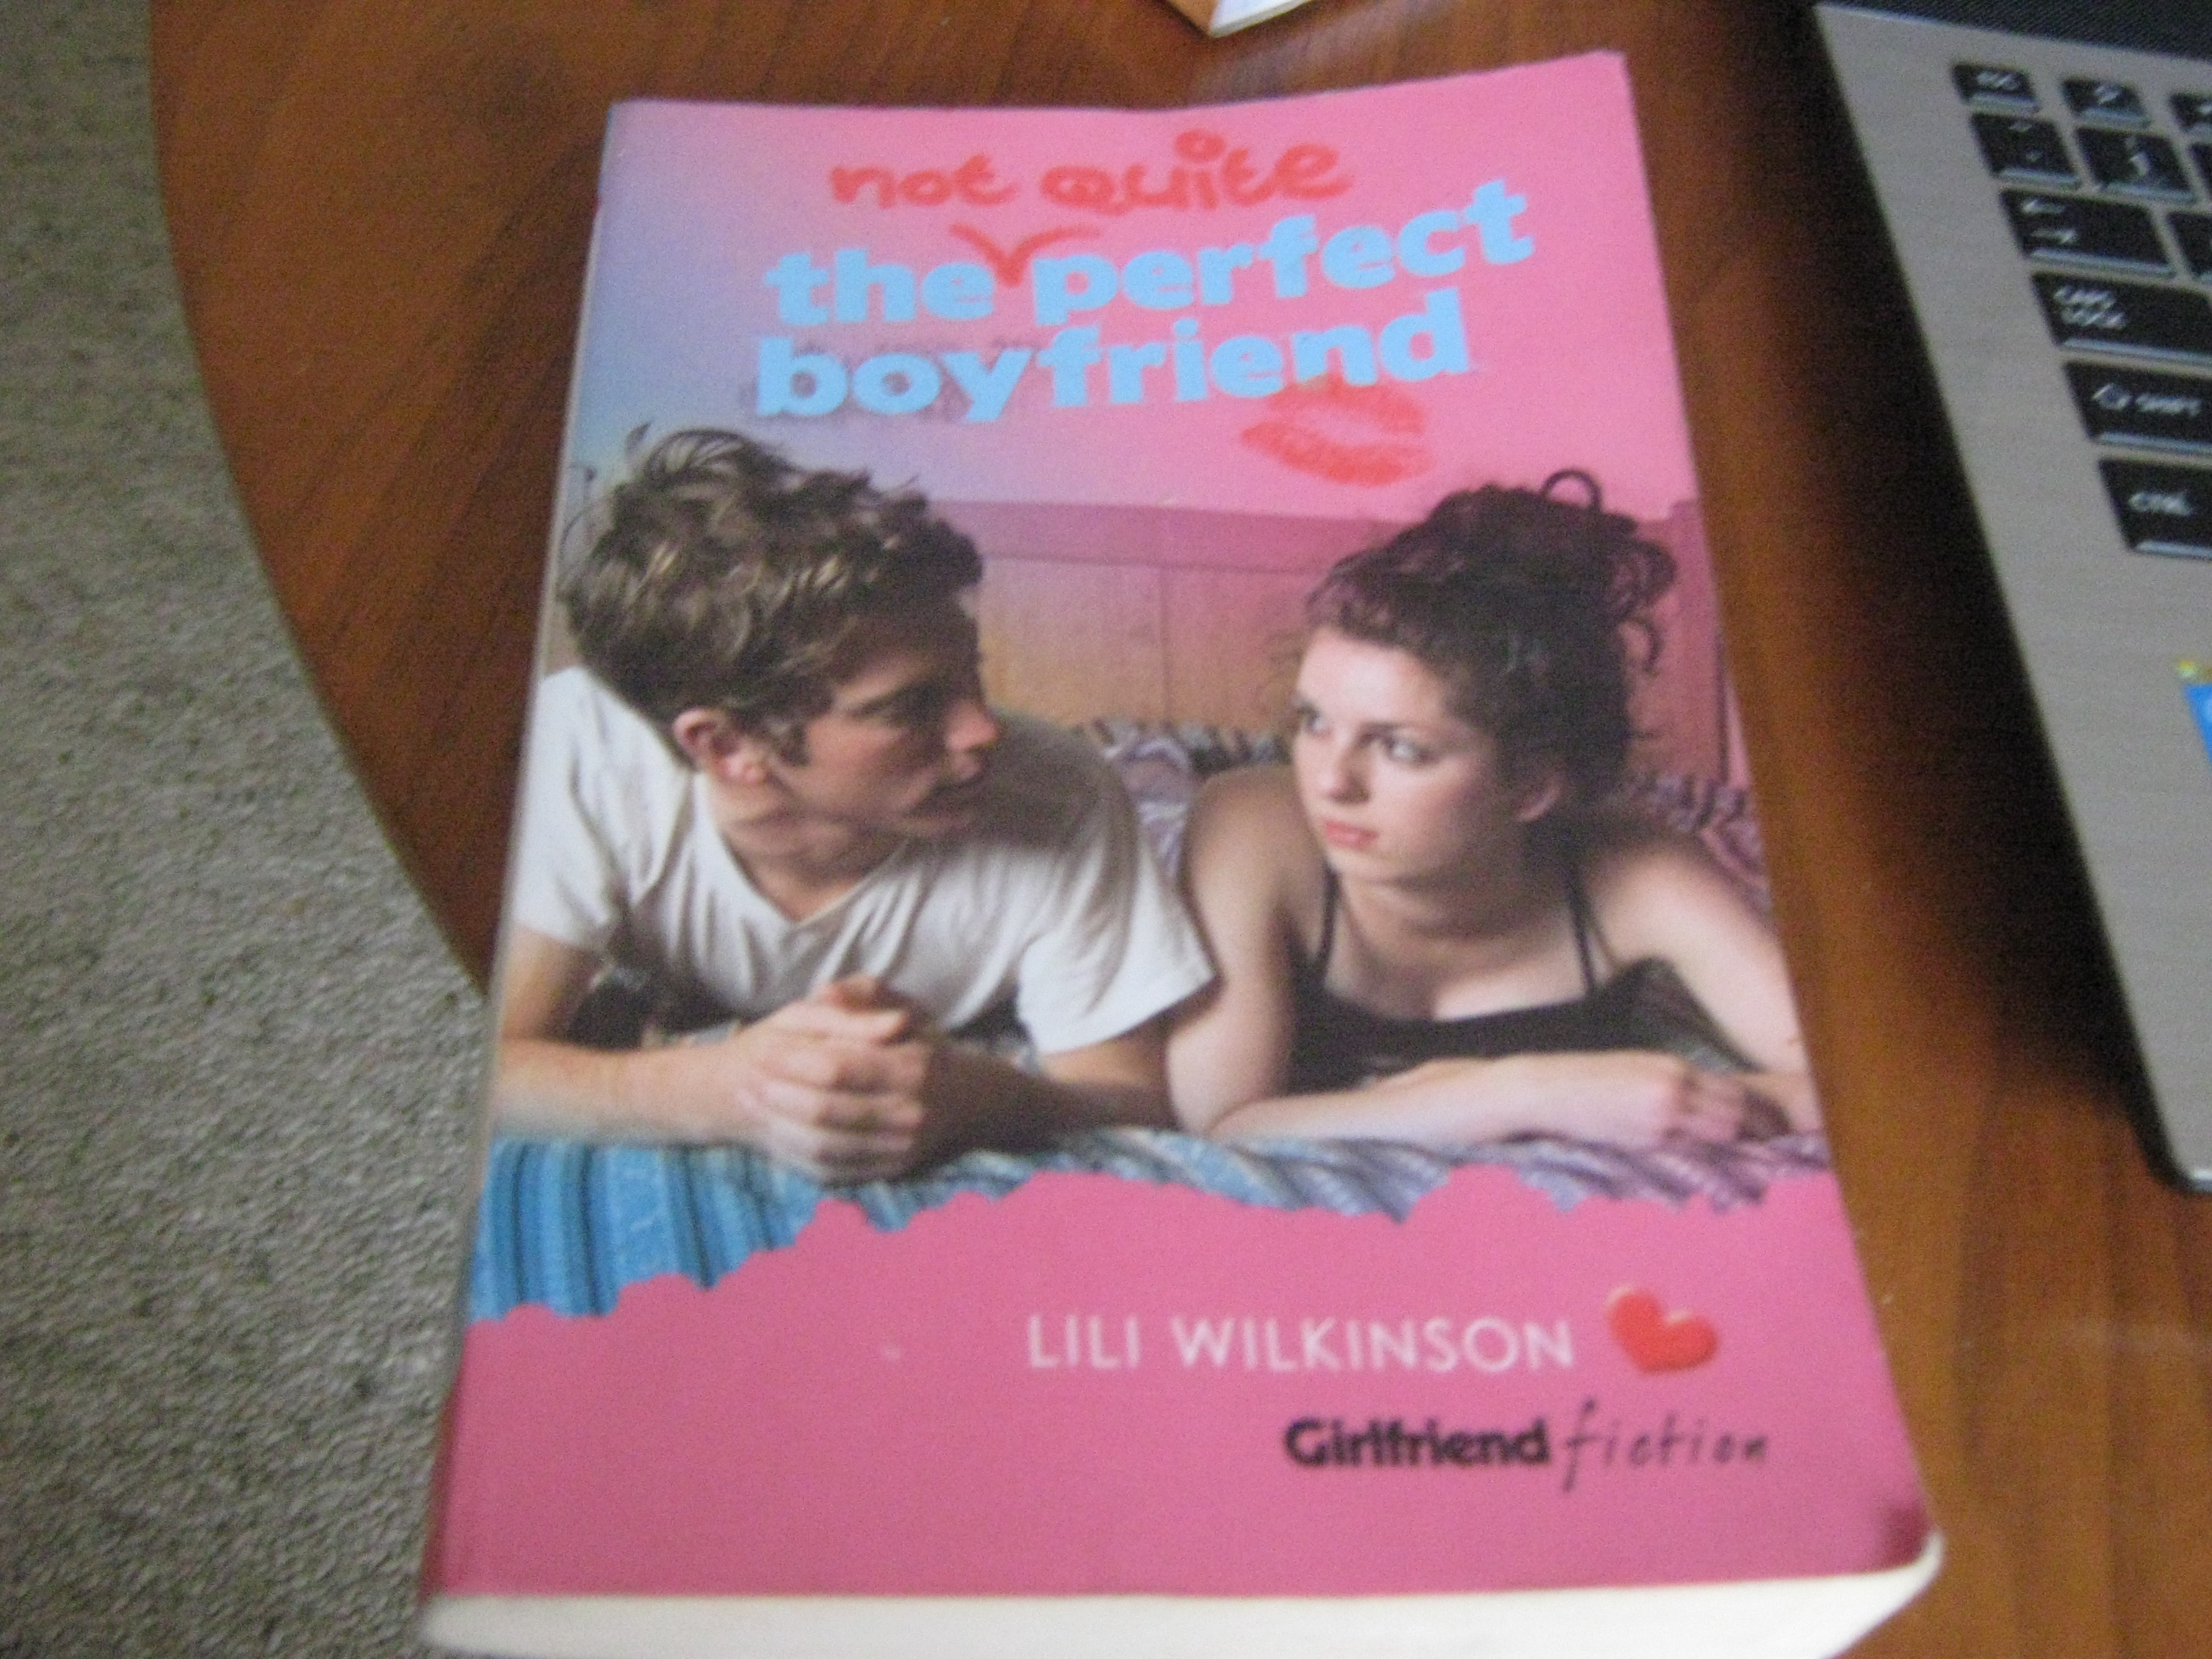 'The not quite perfect boyfriend' by Lili Wilkinson